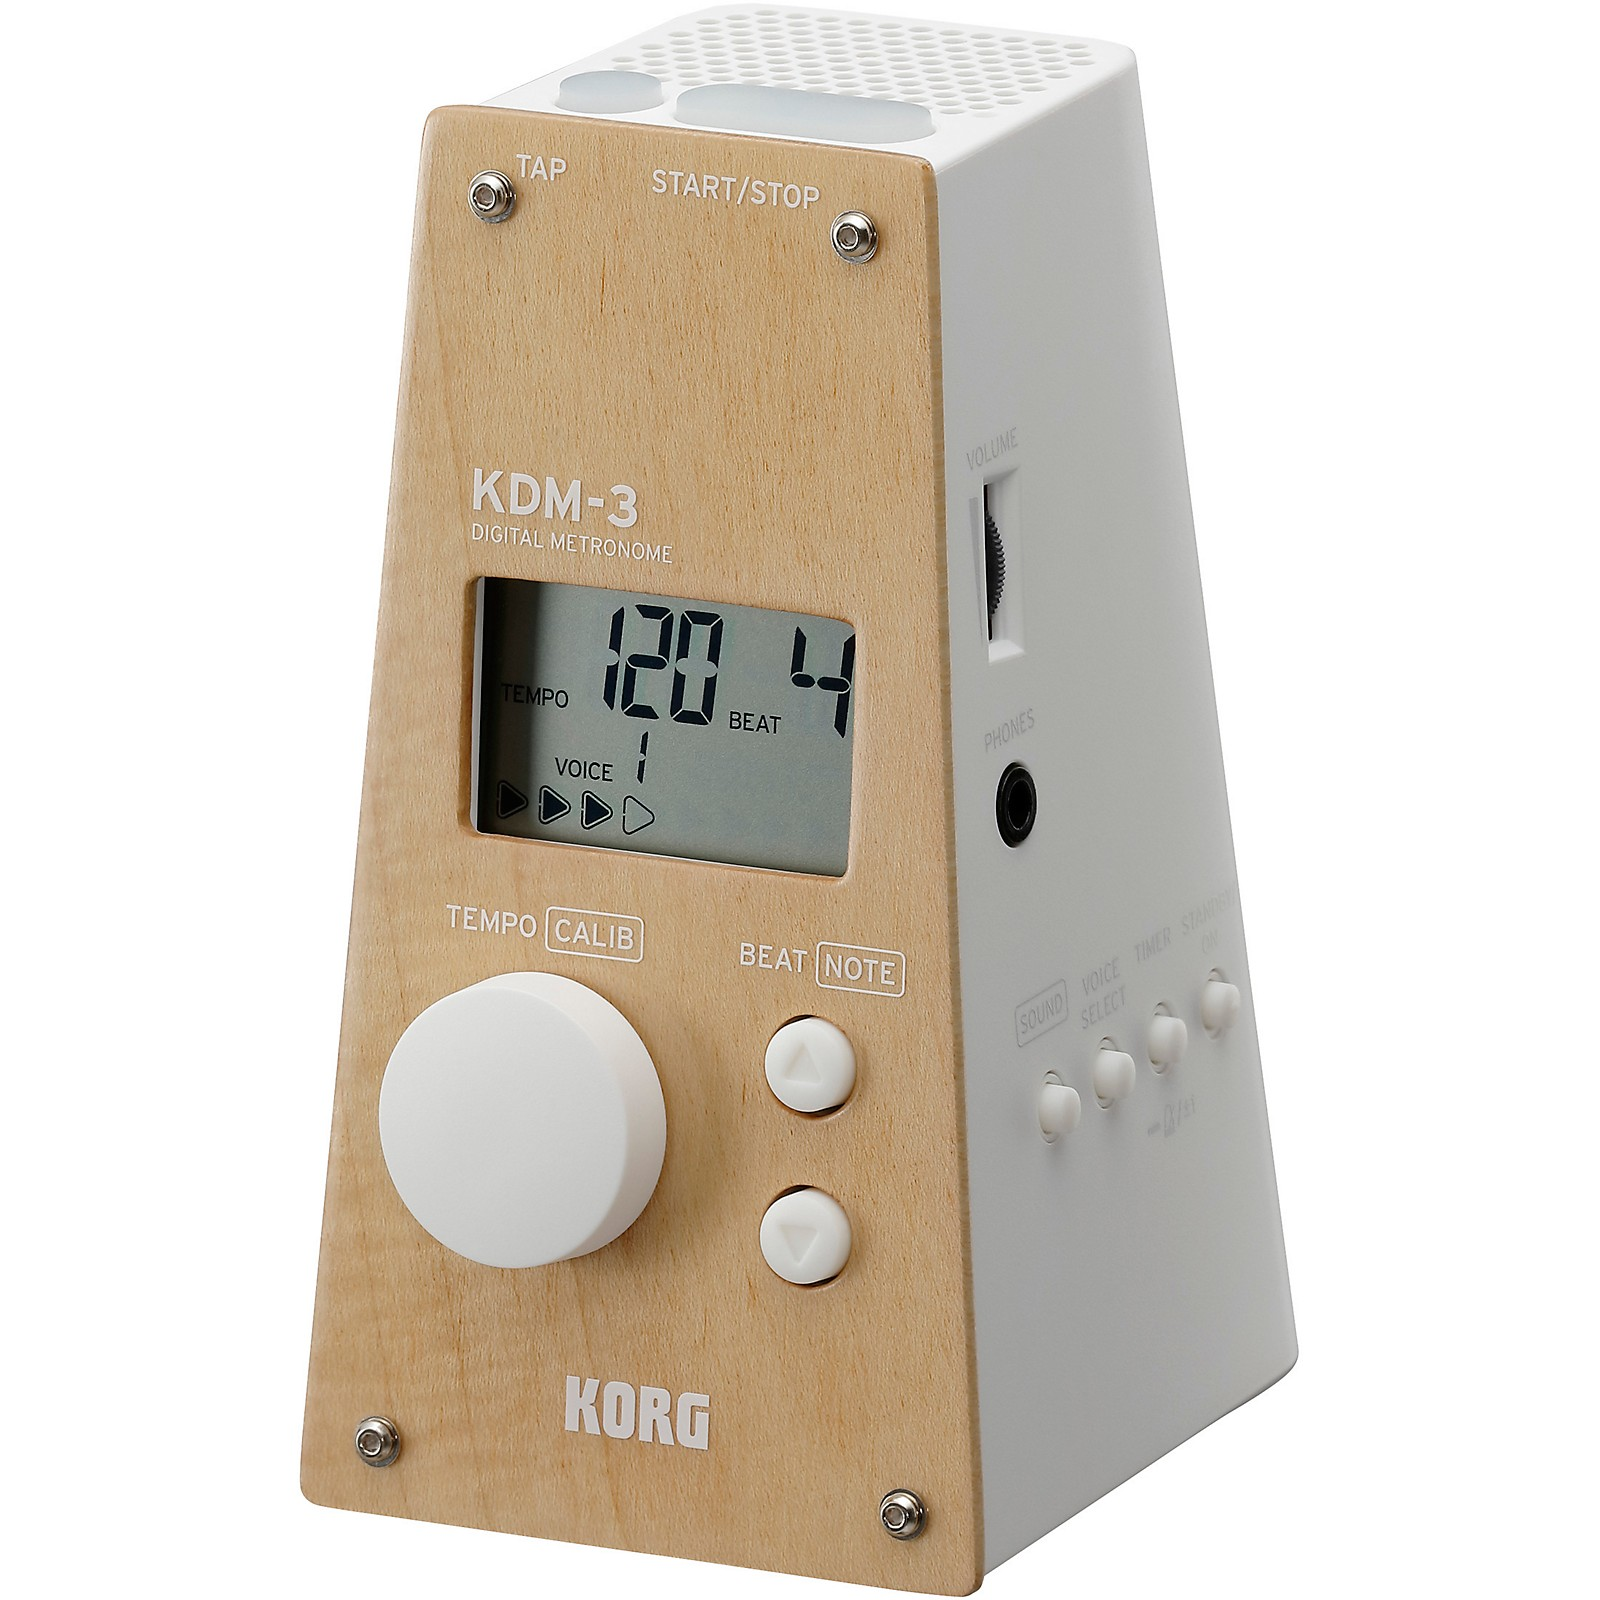 Korg Limited Edition KDM-3 Digital Metronome